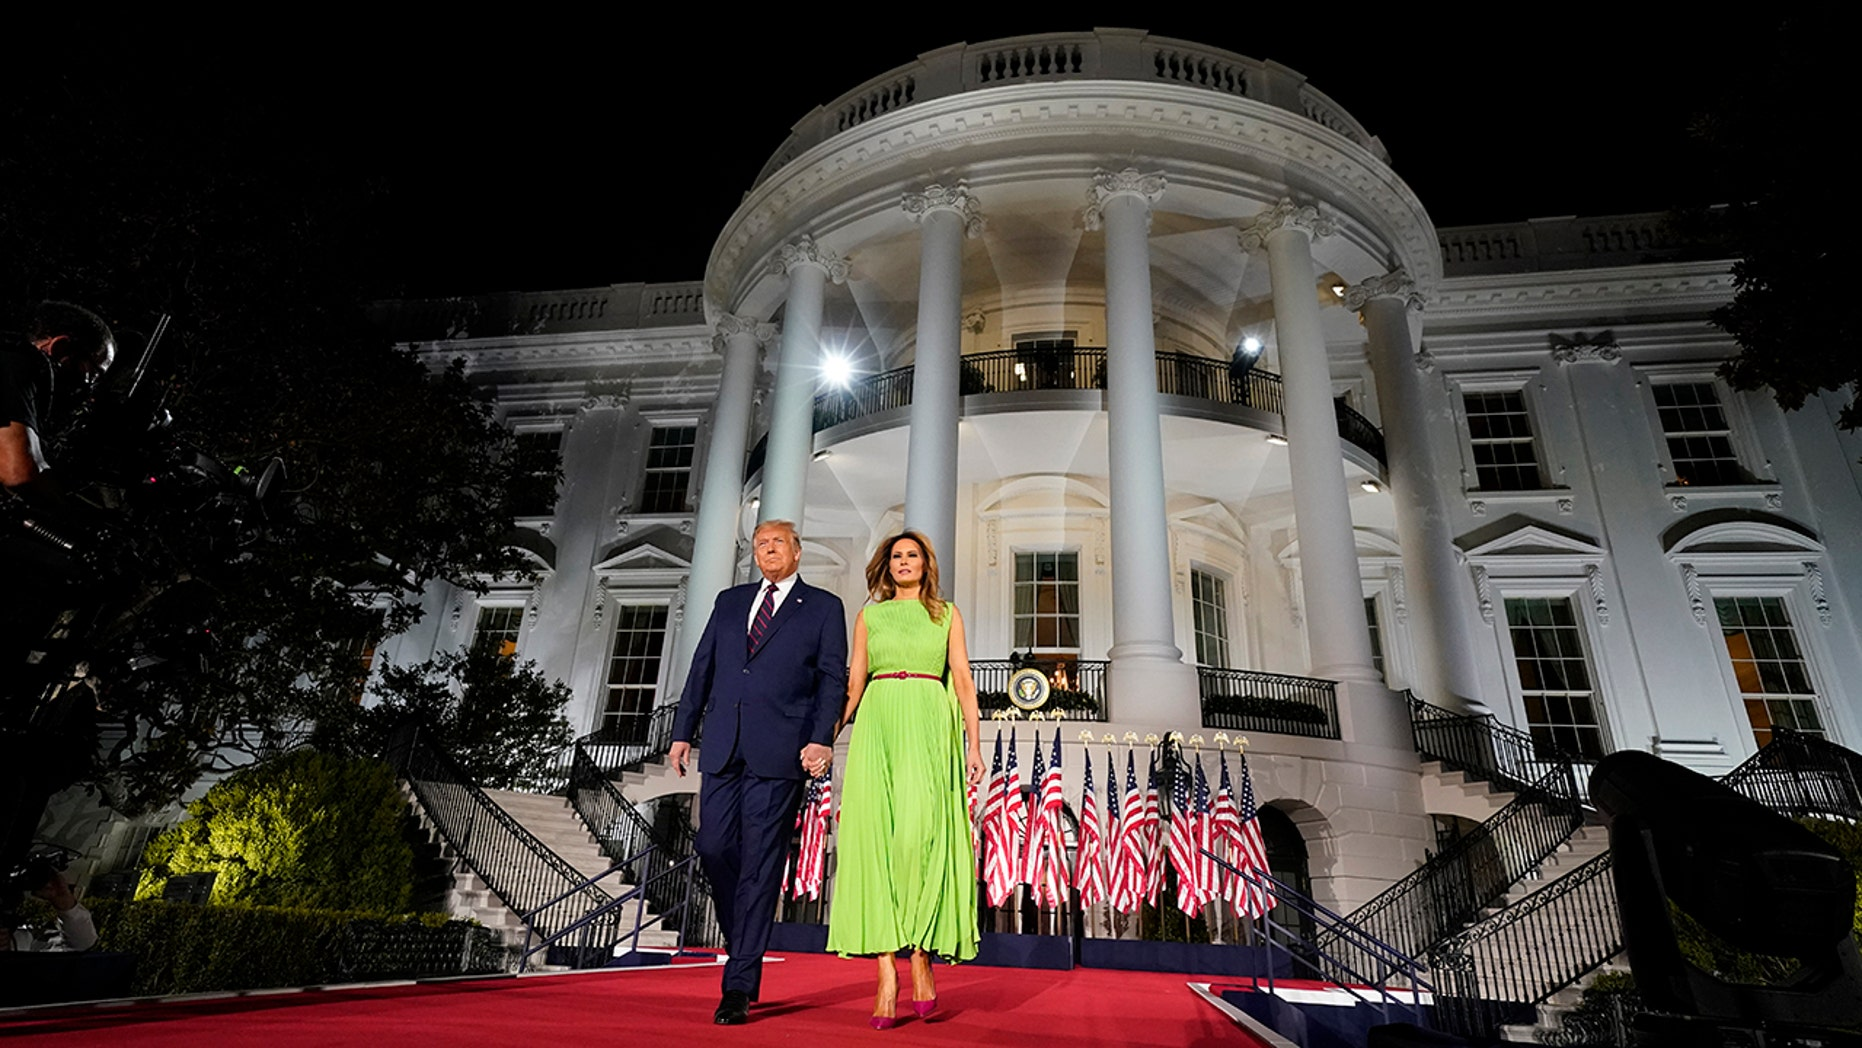 President Trump and first lady Melania Trump arriving for his acceptance speech to the Republican National Committee Convention at the White House last week. (AP Photo/Evan Vucci)